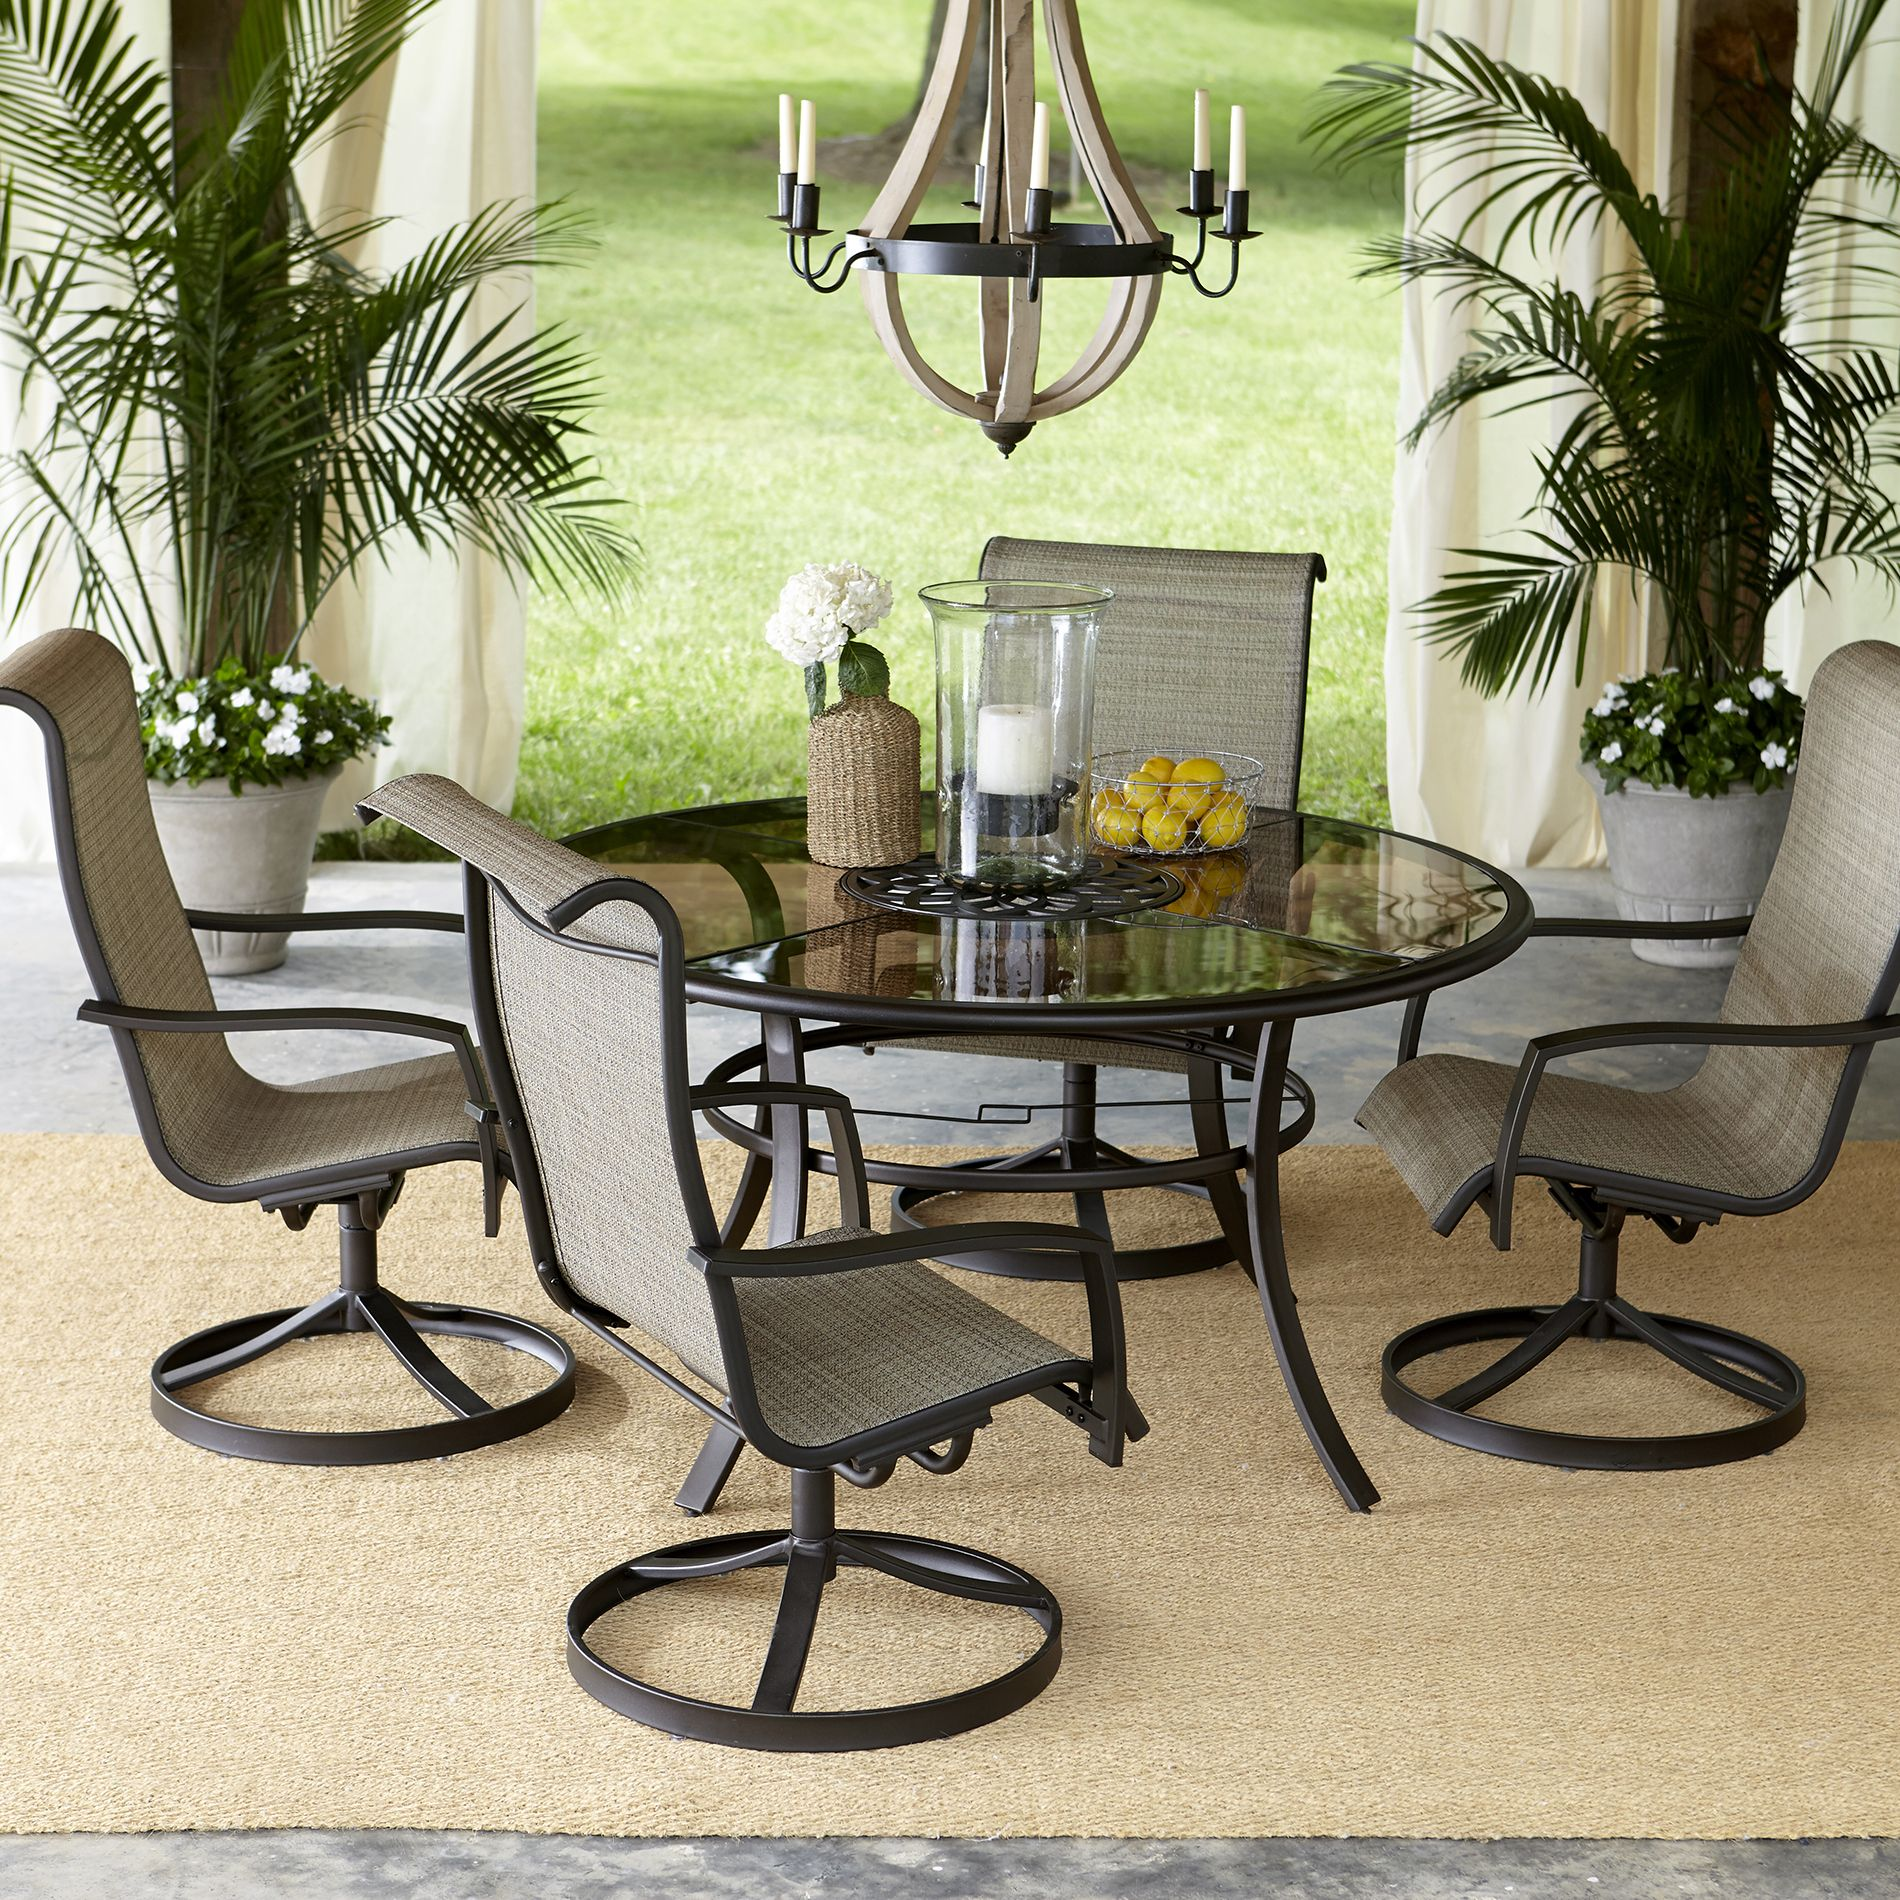 Dining Furniture Outlet: Providence 5 Piece Swivel